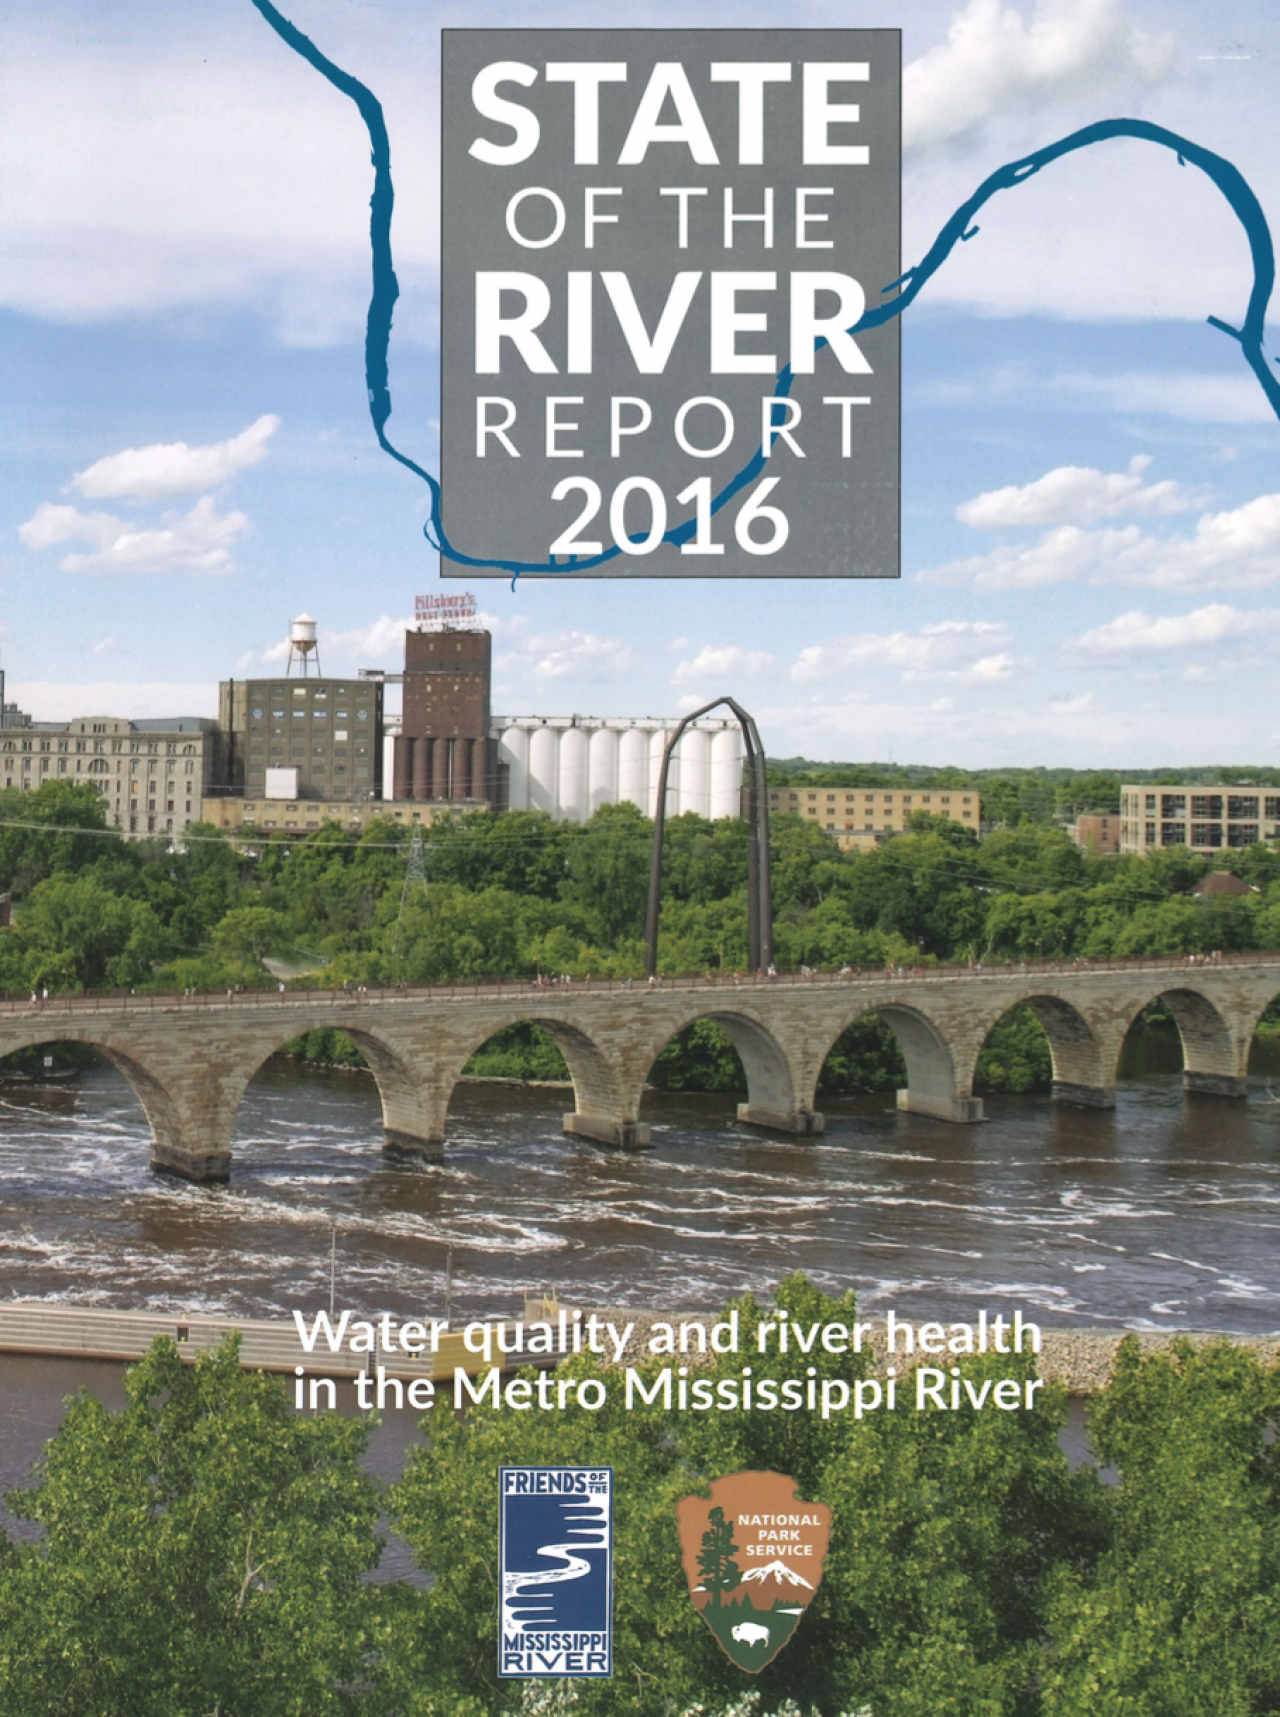 State of the River Report 2016